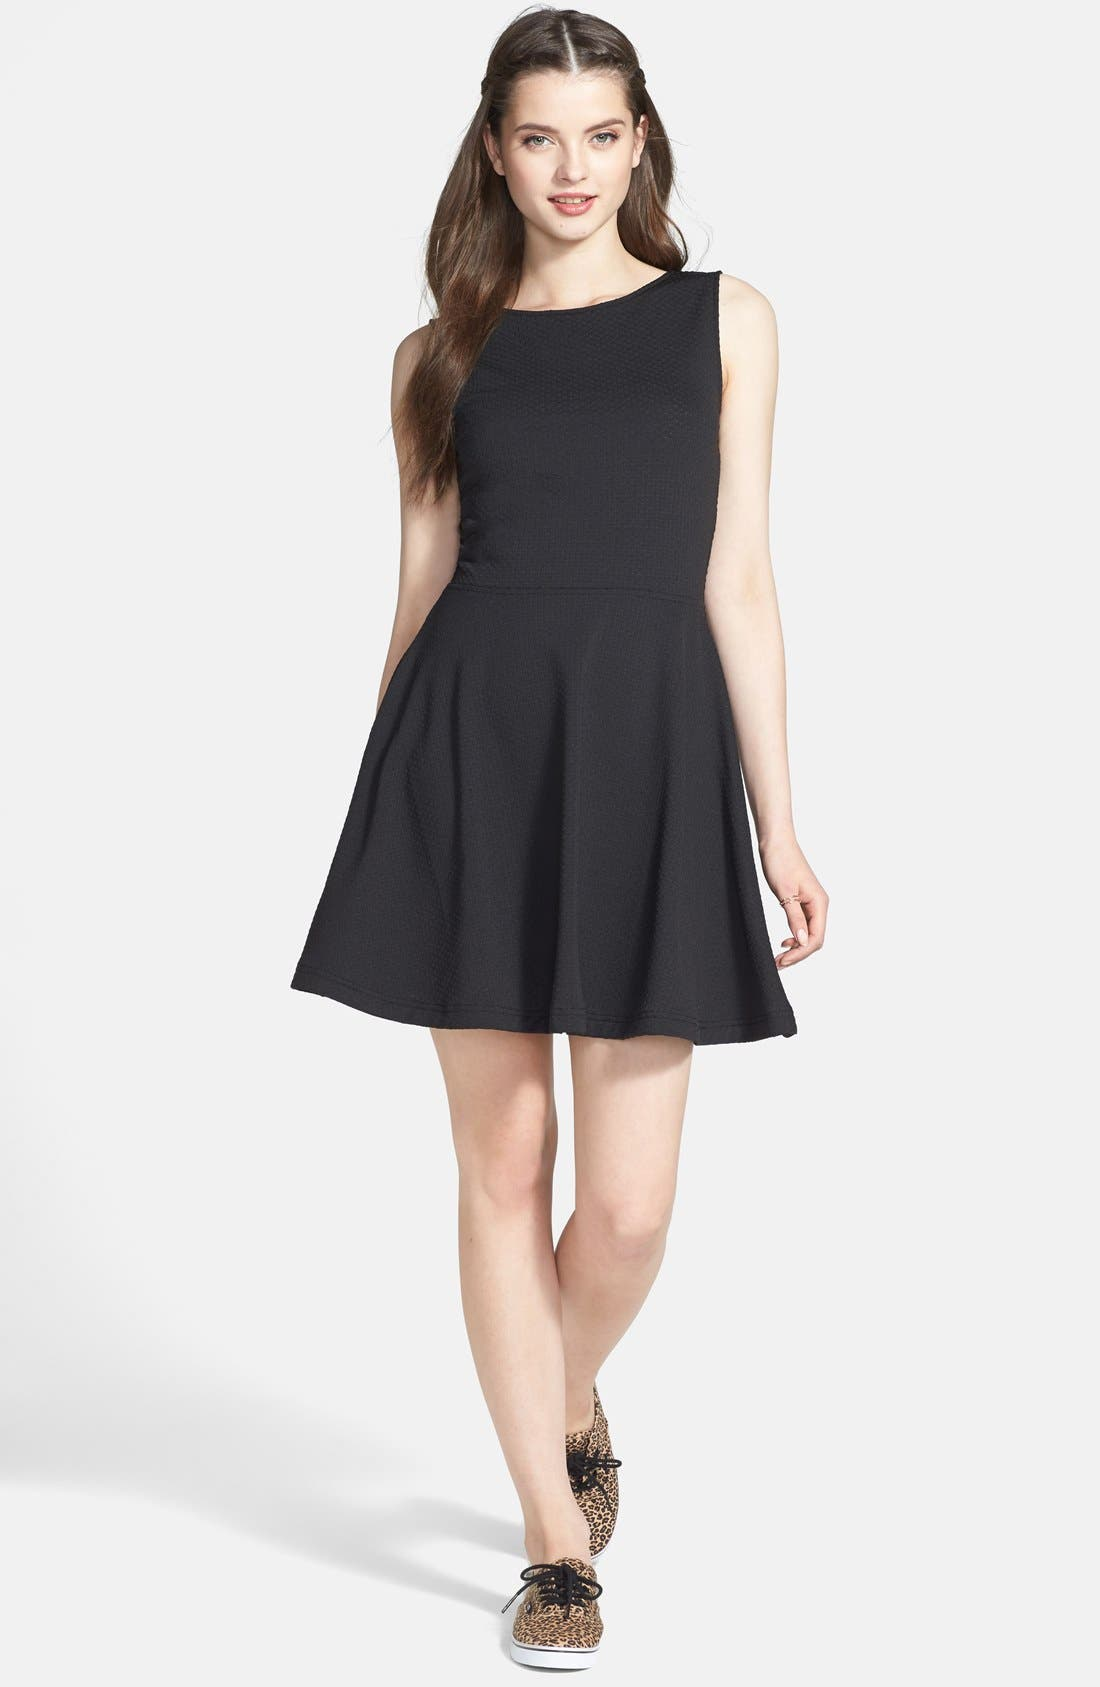 FRENCHI  Textured Skater Dress, Main, color, 001